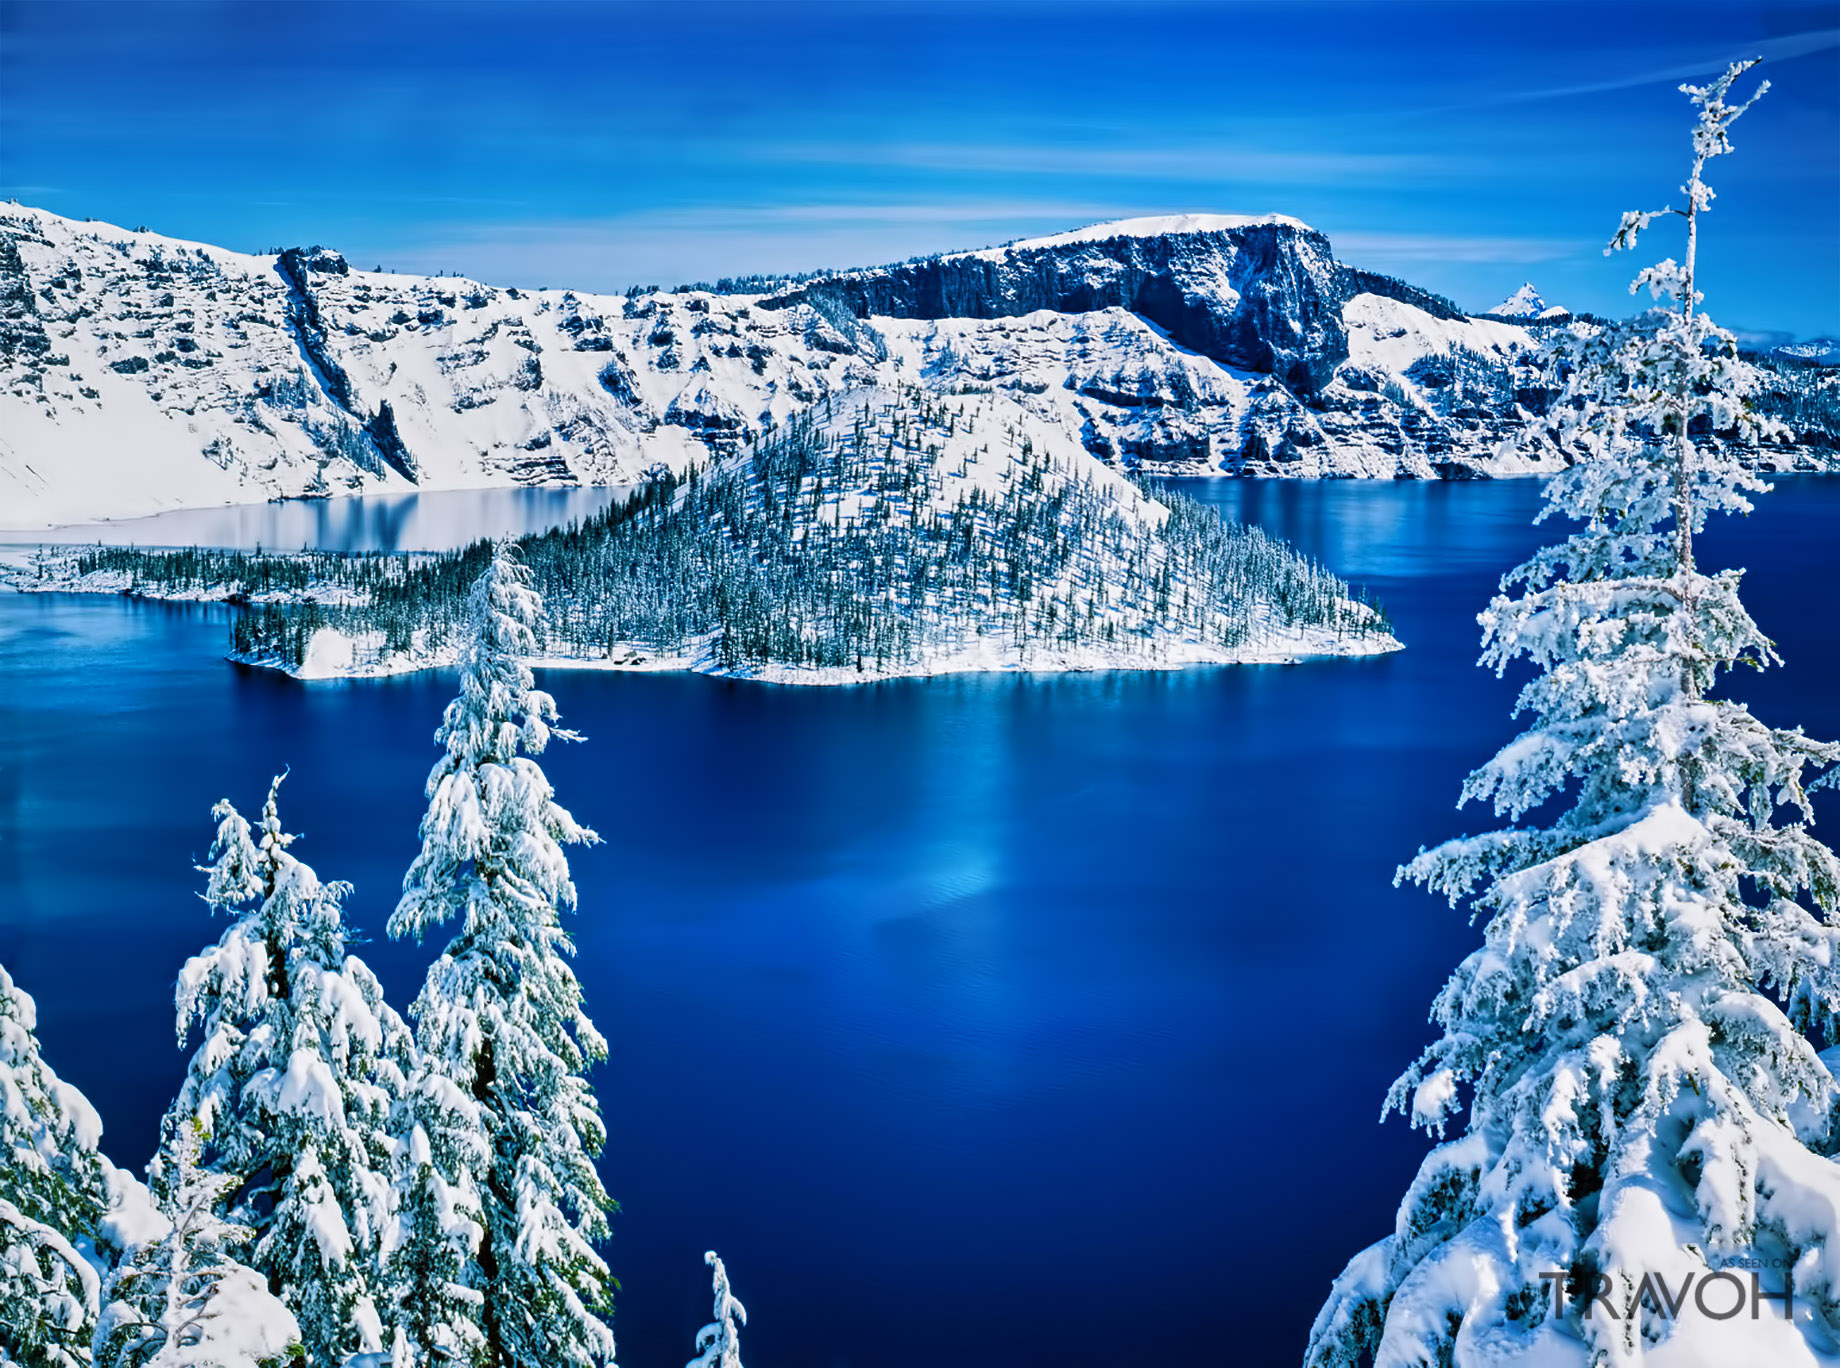 Winter Wonderland at Crater Lake in Oregon, USA